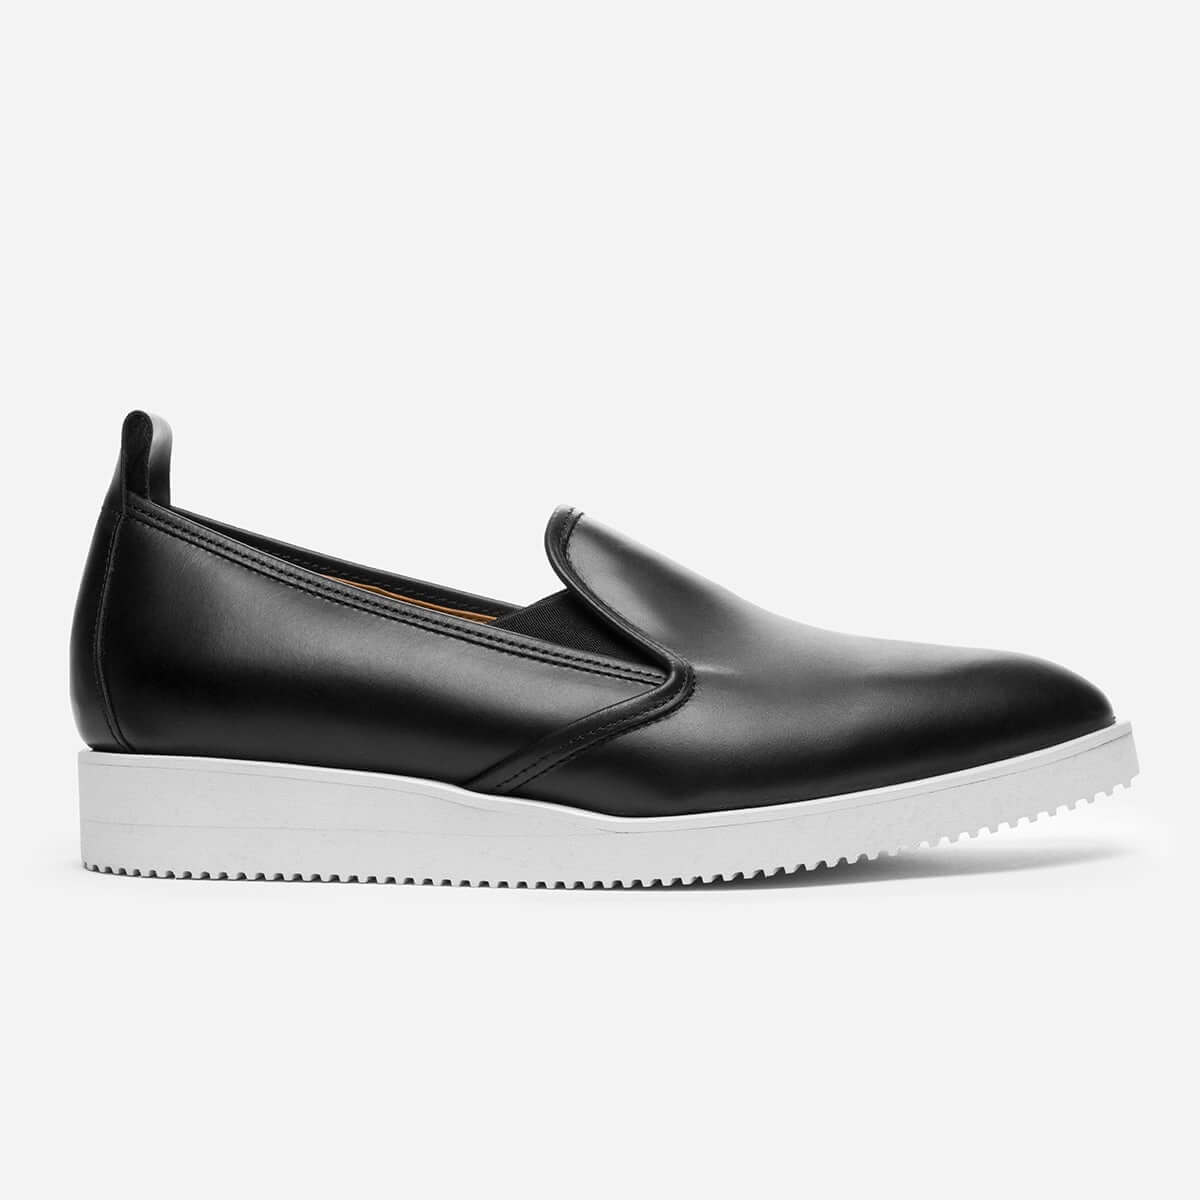 Slip on shoes for travel